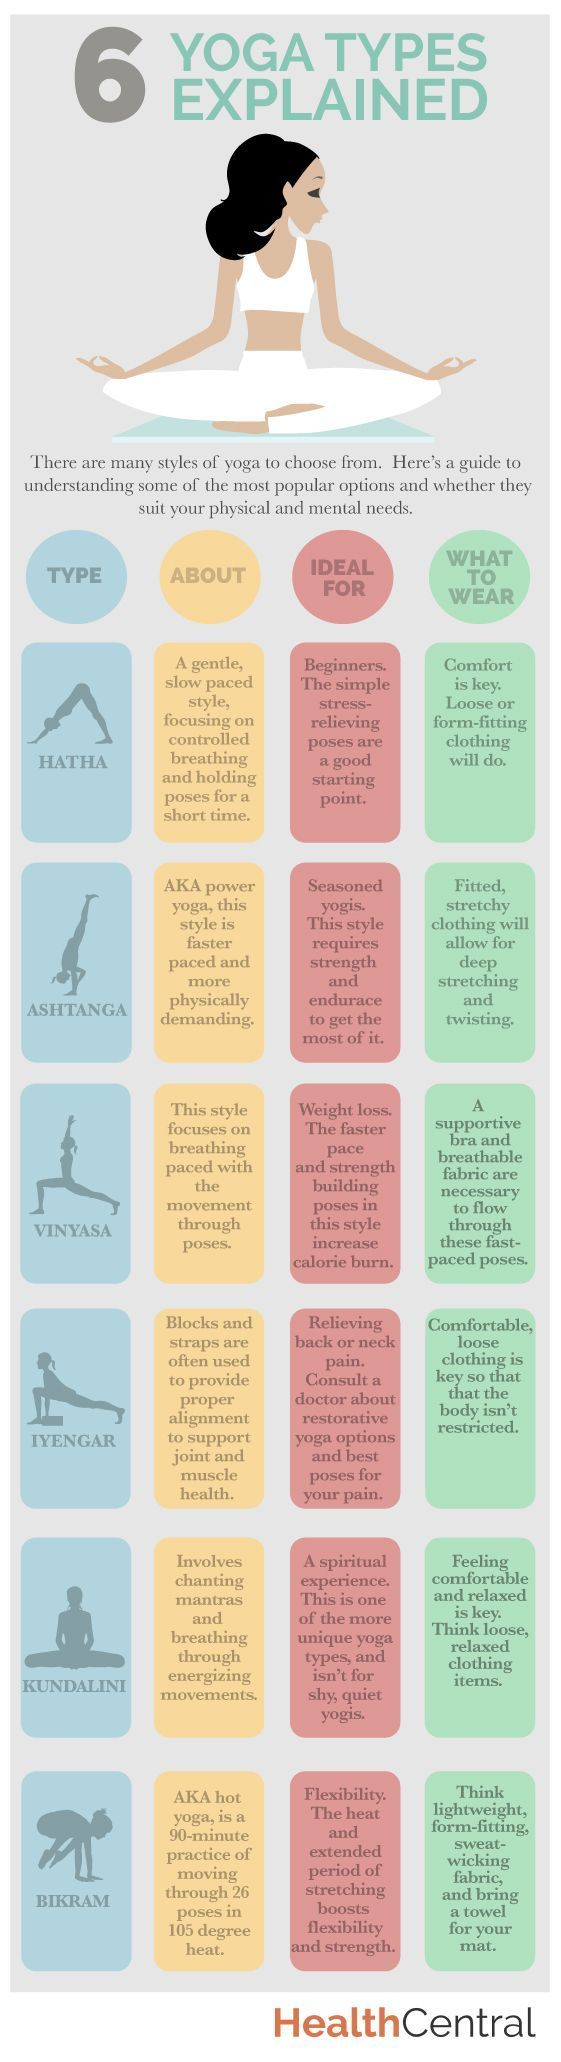 awesome 6 Yoga Types Explained (INFOGRAPHIC) - Diet & Exercise